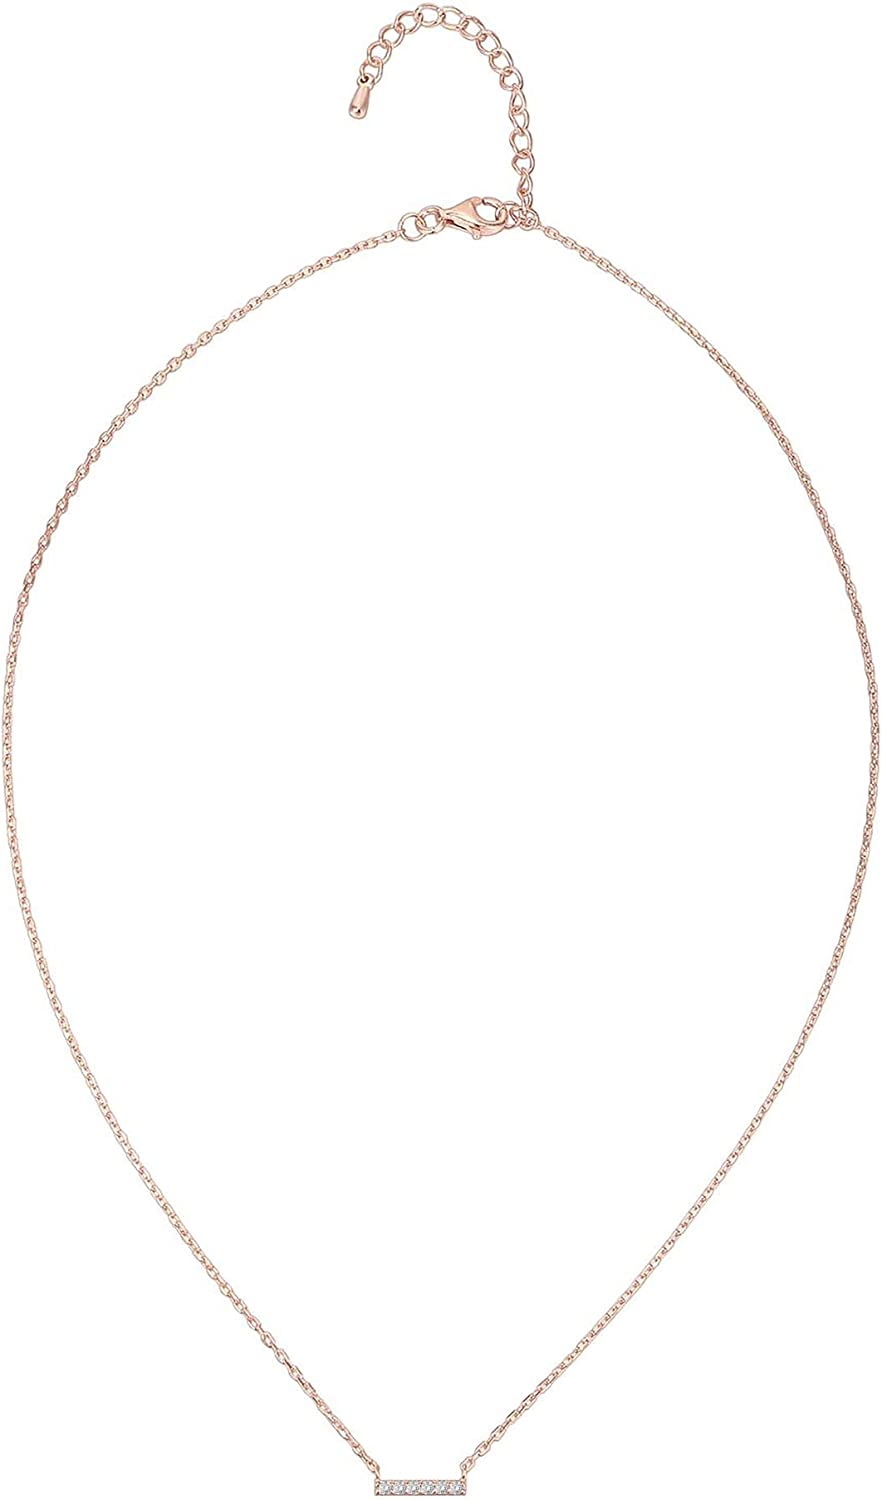 PAVOI 14K Gold Plated Heart//Dot//Bar//Triangle Necklace Layered Necklaces 18 Length with a 2 Extension Gold Necklaces for Women